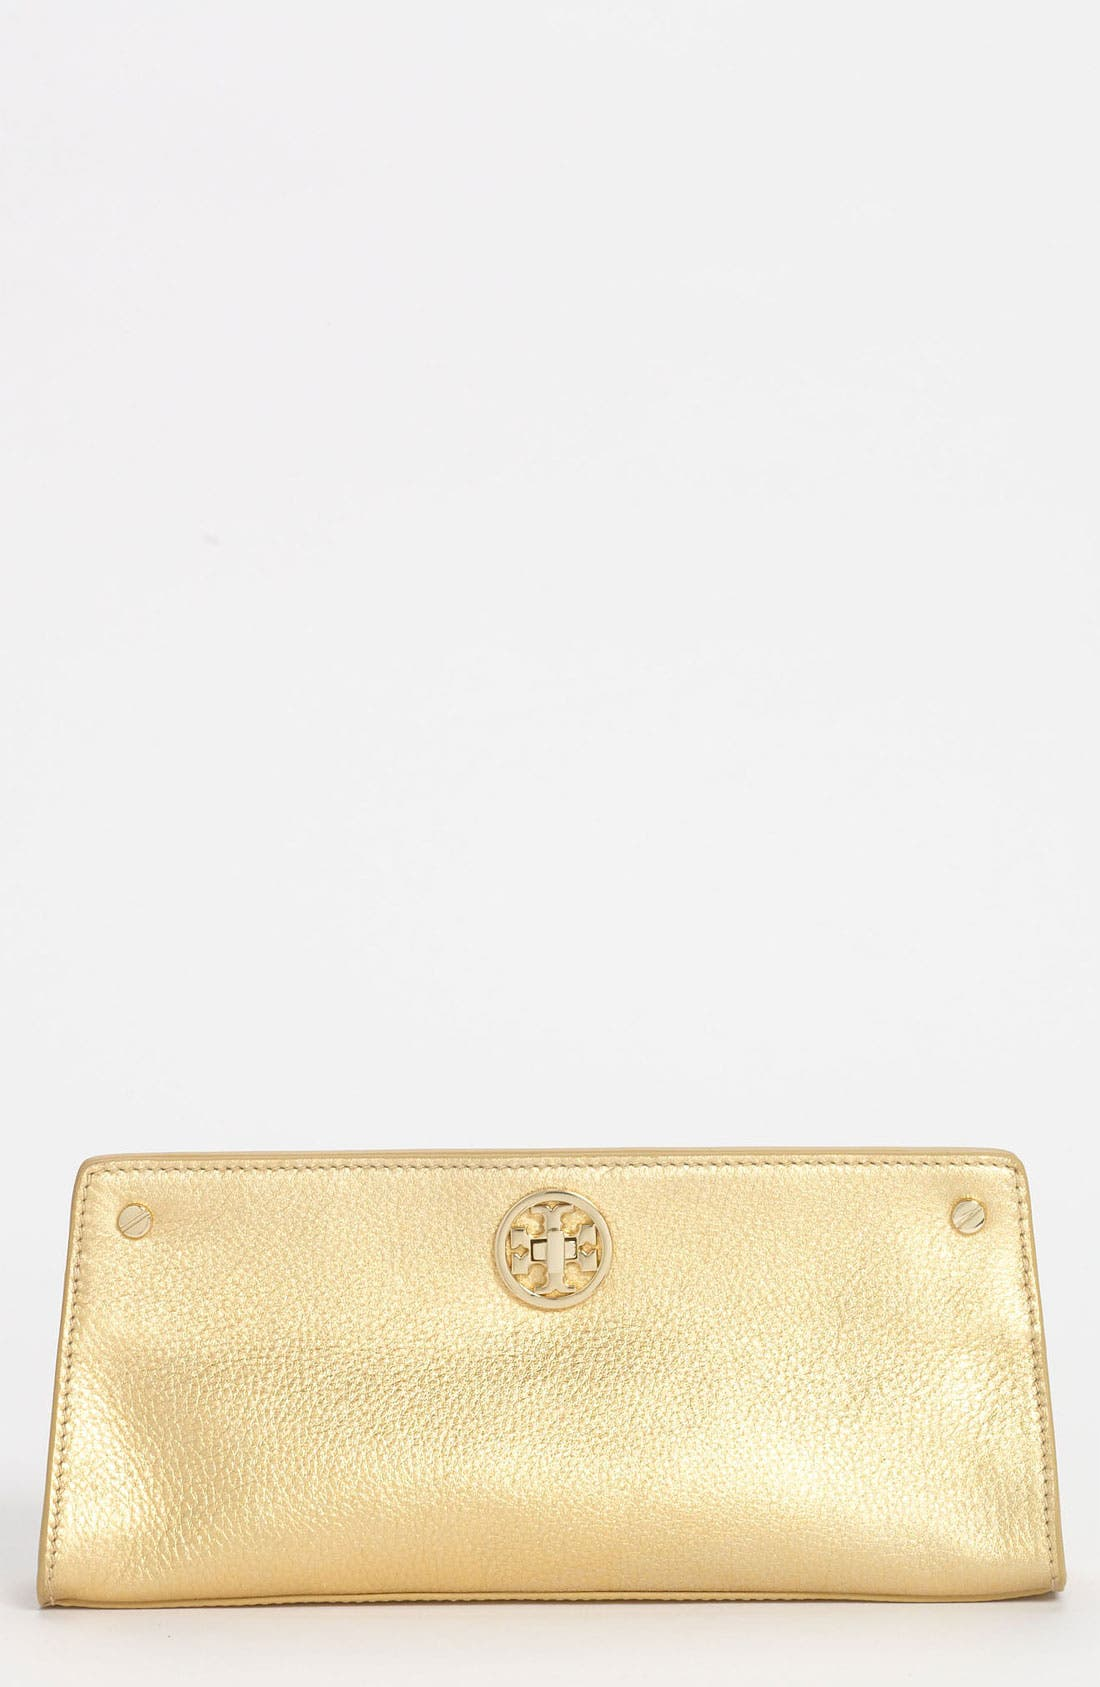 Main Image - Tory Burch 'Austin' Leather Clutch